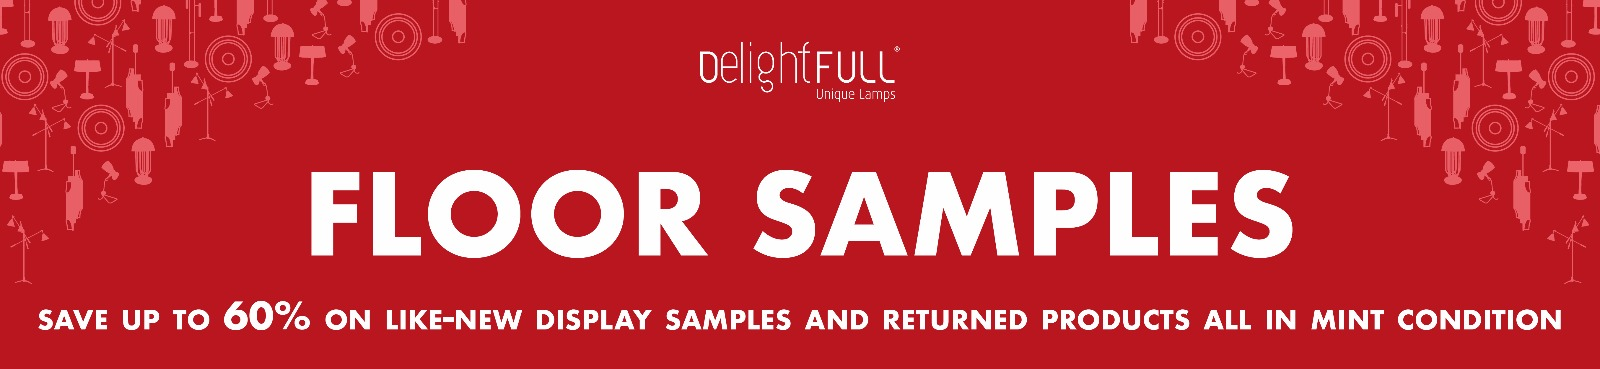 Delightfull_Shop_Floor_Samples